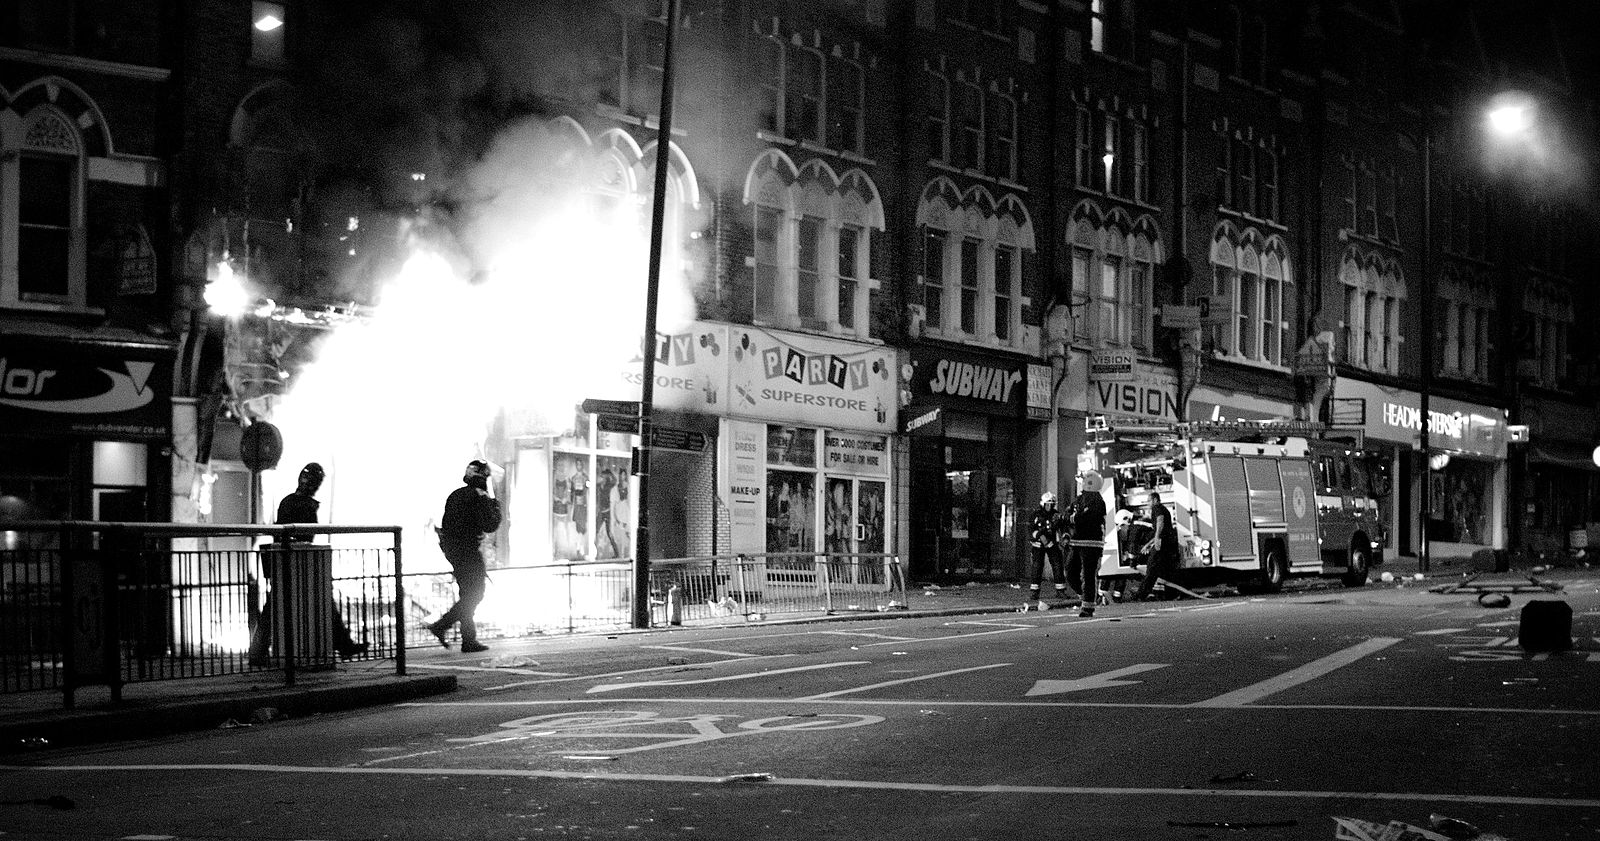 10 years on from the London riots – how much has police violence changed in Britain?